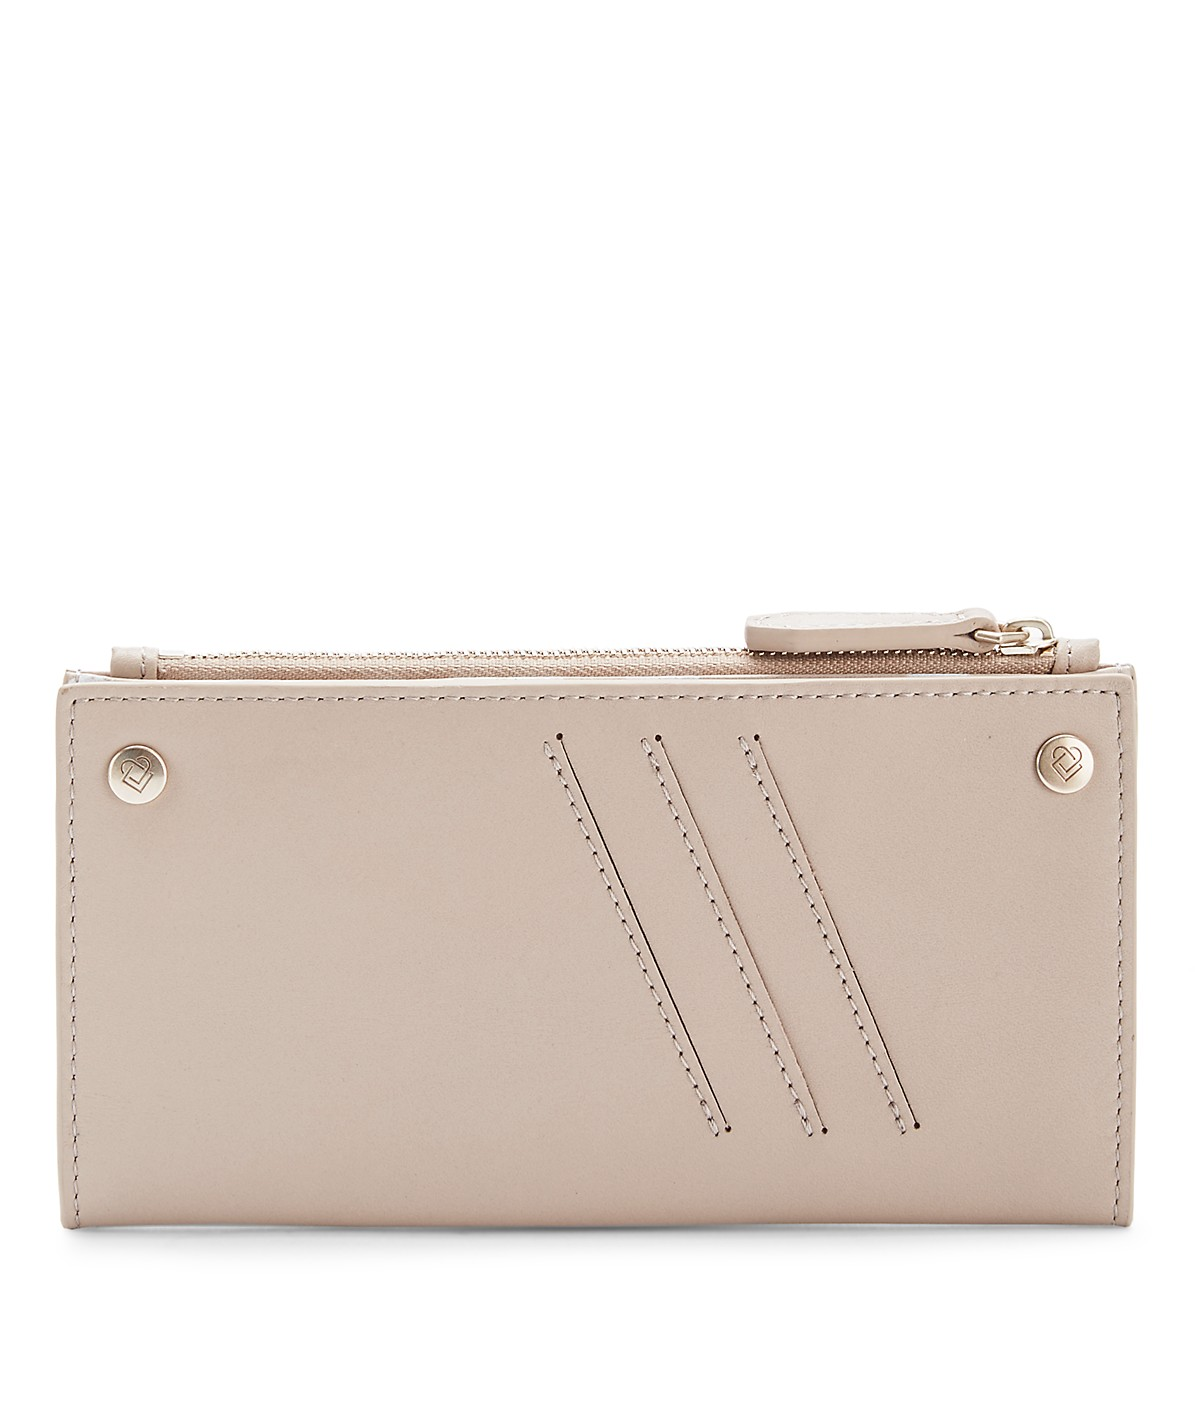 Jojo wallet from liebeskind